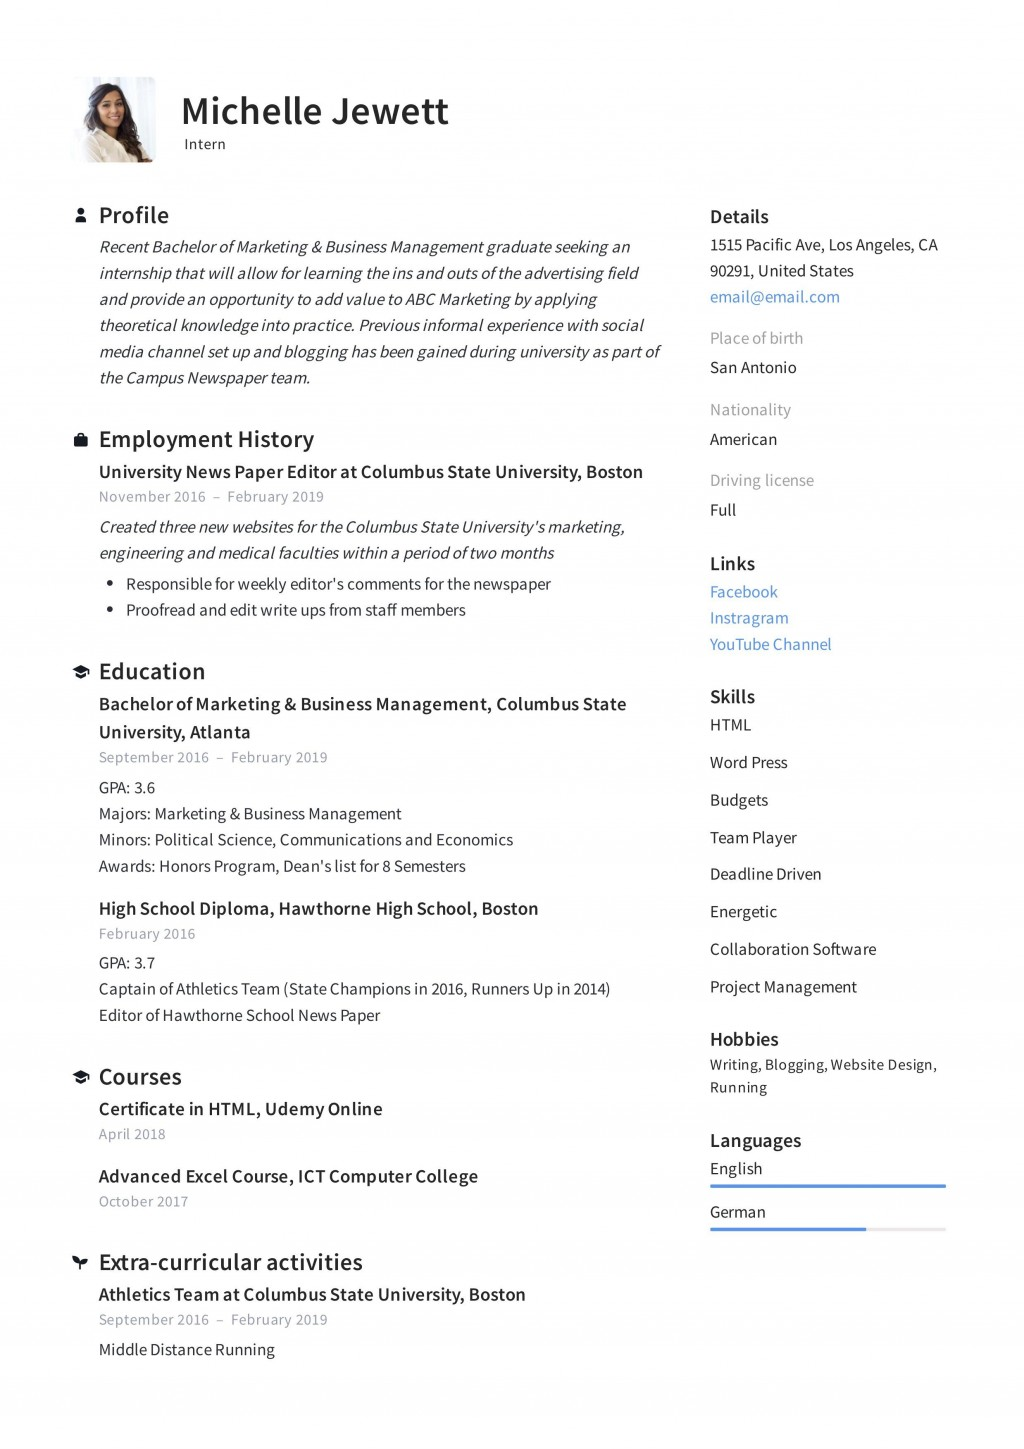 008 Unique Resume Template For Intern Image  Interns Internship In Engineering Law ExampleLarge